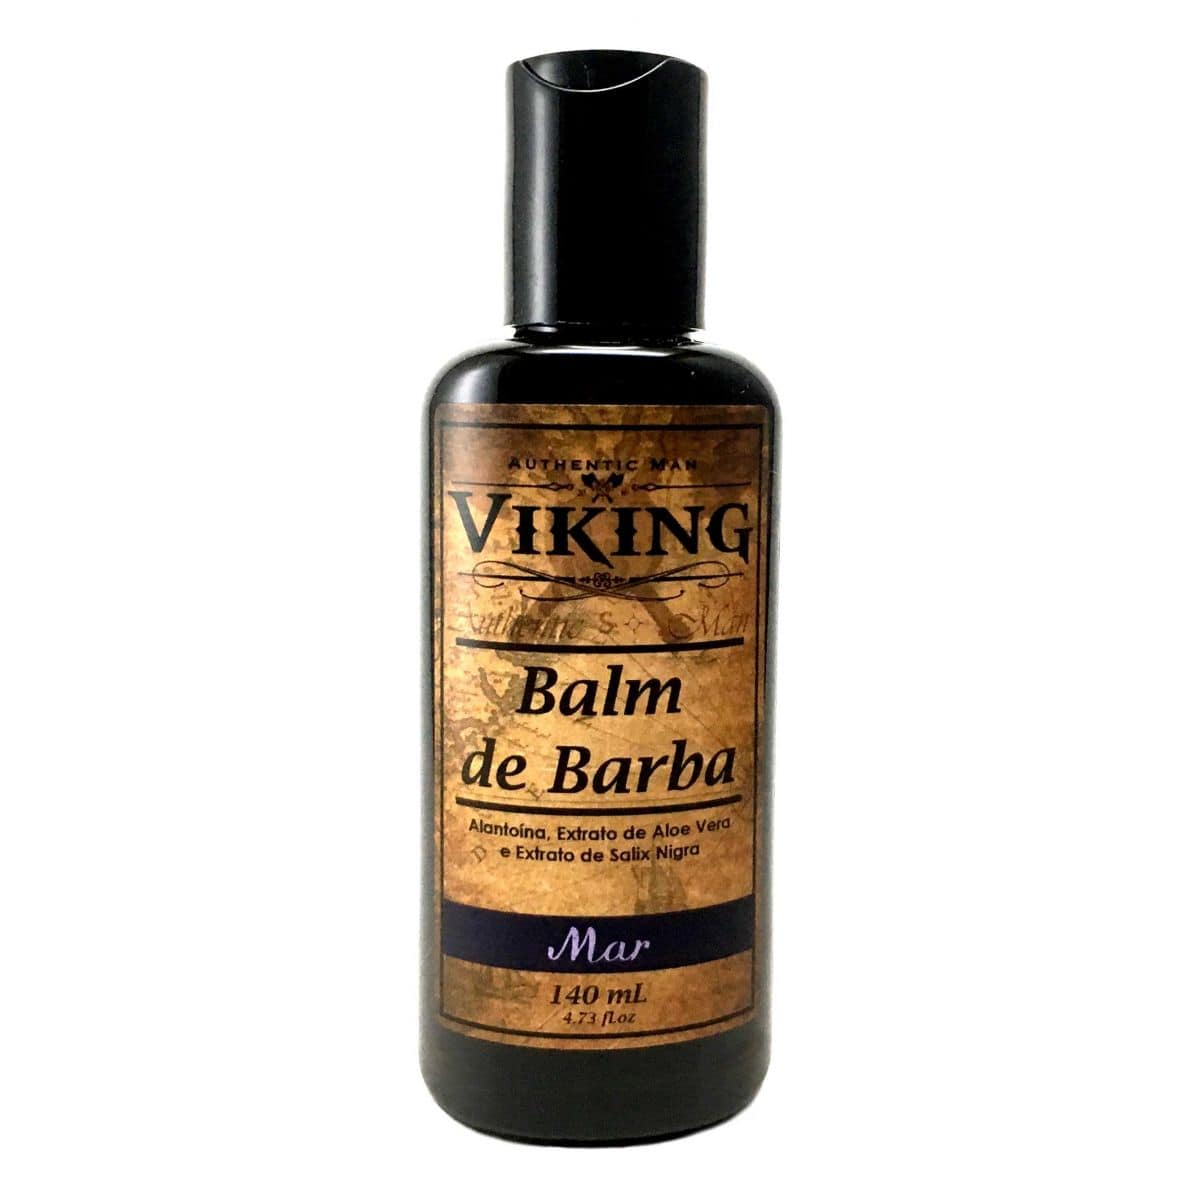 Balm de Barba Mar Viking - 140mL